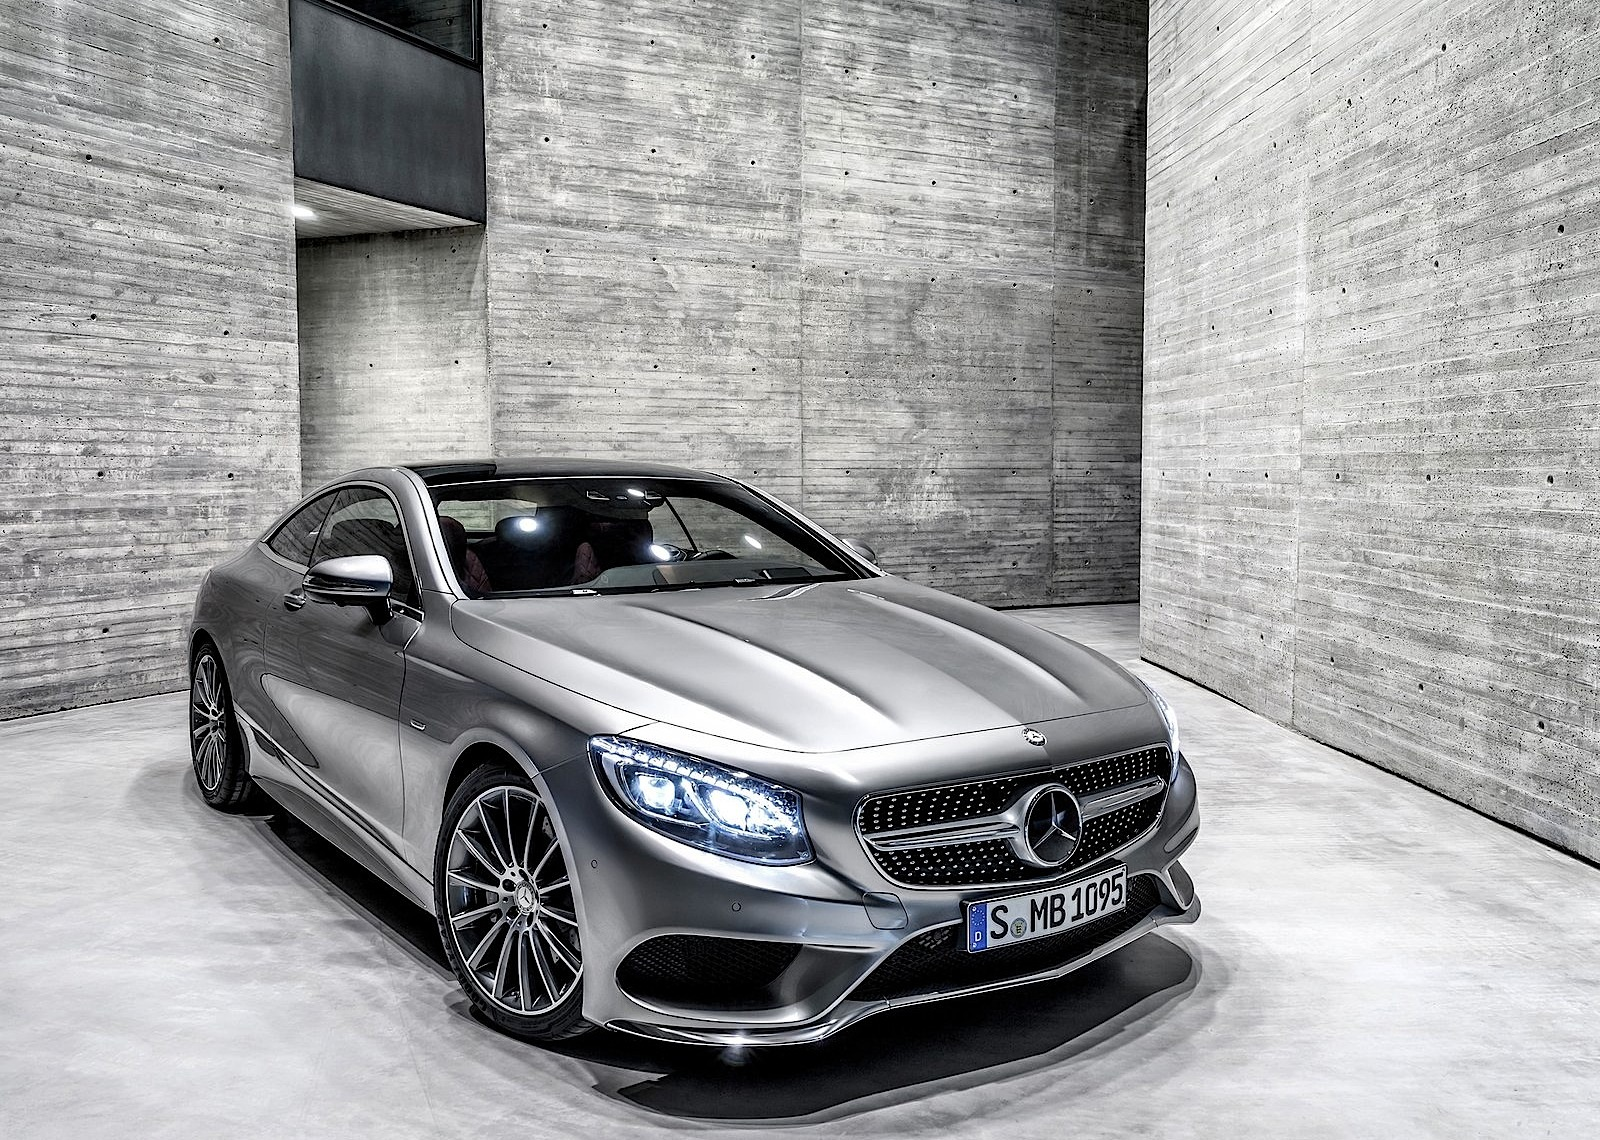 Mercedes benz s 63 amg coupe 2014 2015 2016 2017 for Mercedes benz cars images